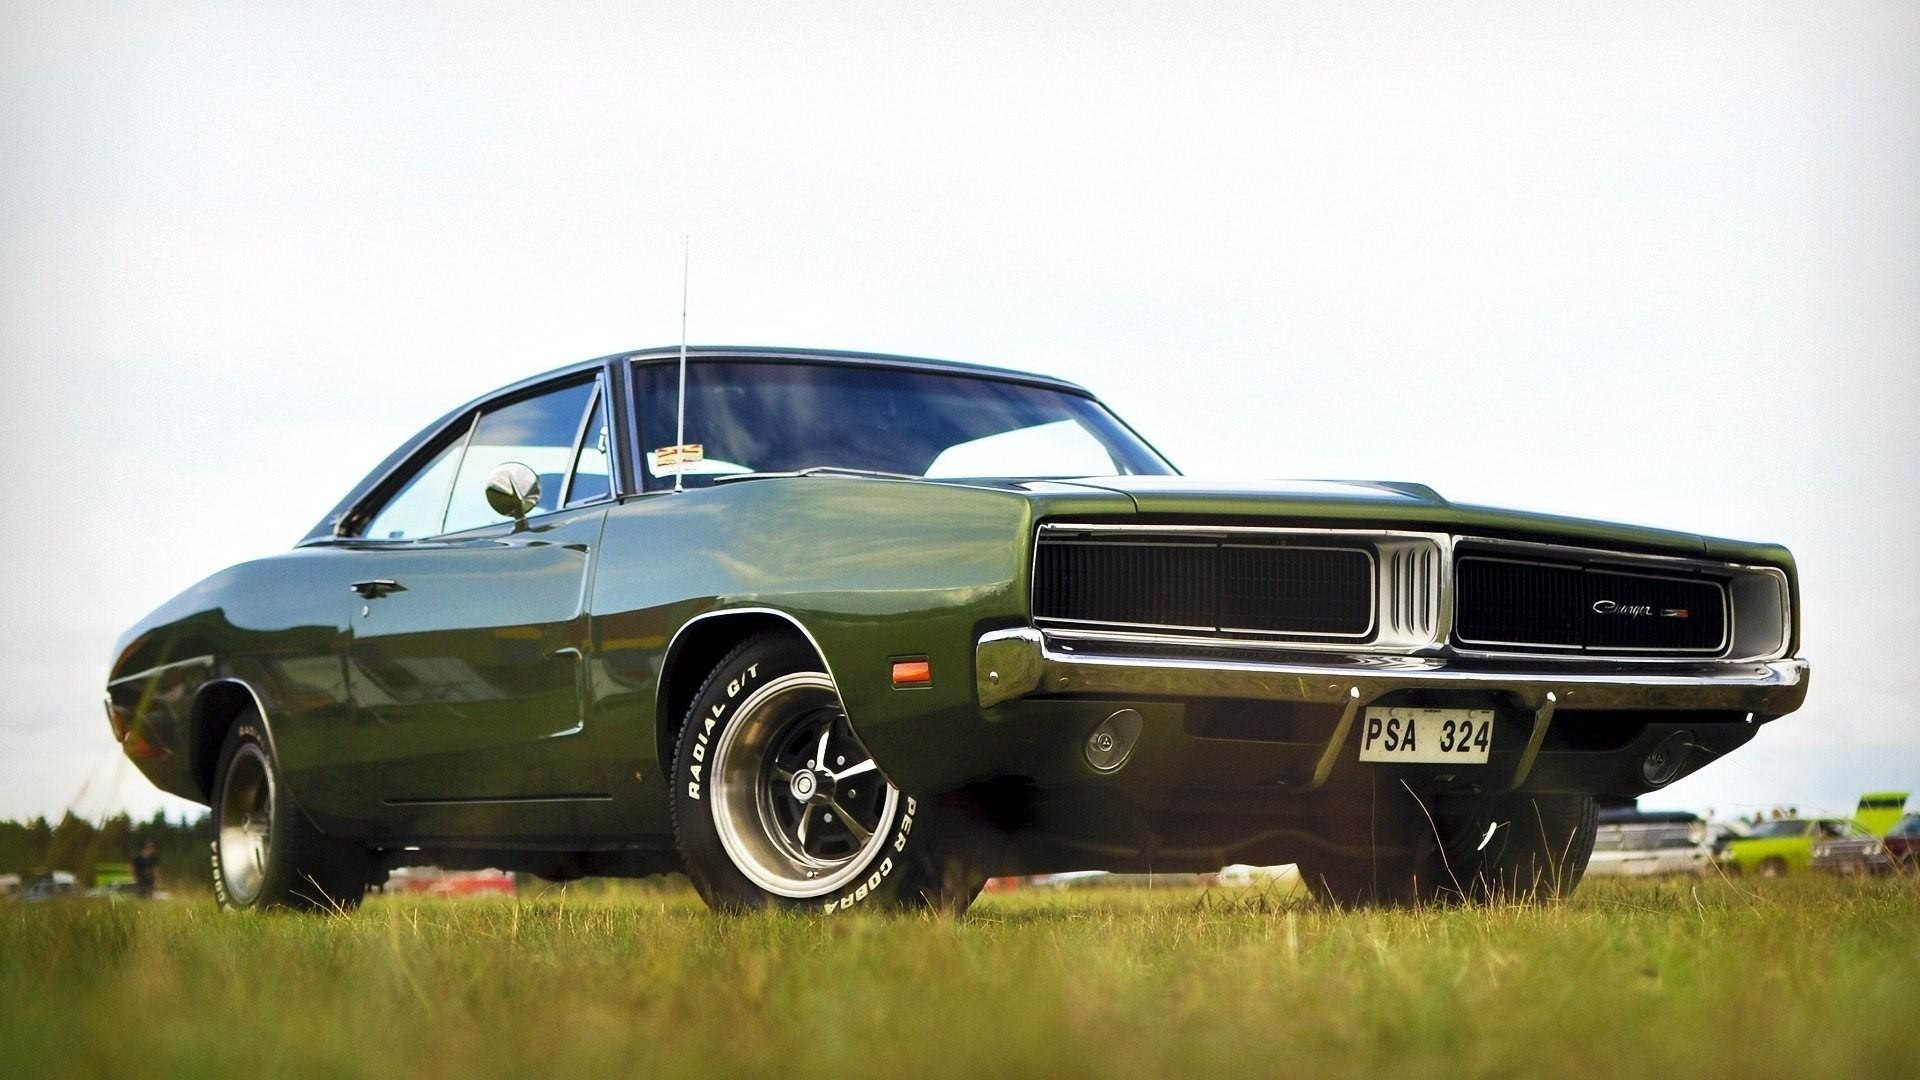 Cars chevrolet charger dodge muscle car wallpaper 63701 1920x1080